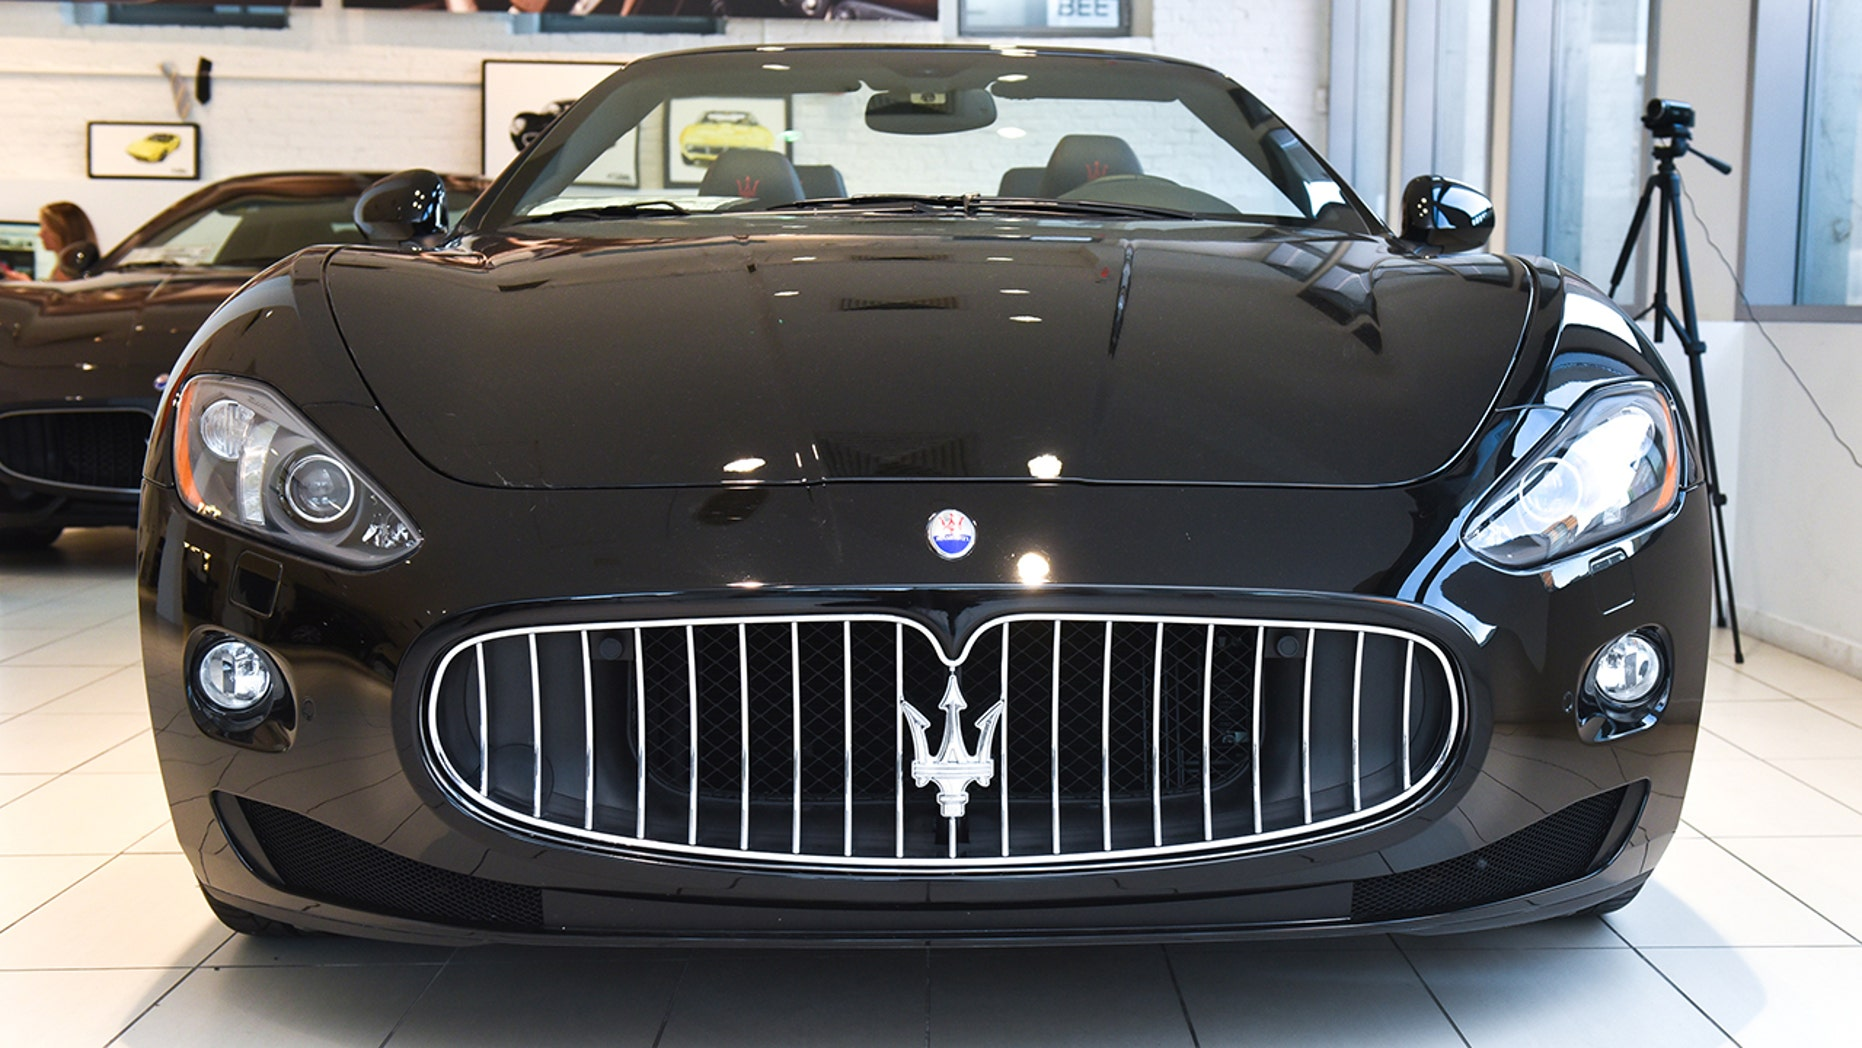 A Maserati is seen in a showroom in New York City, Sept. 27, 2016. (Jared Siskin/Patrick McMullan via Getty Images)